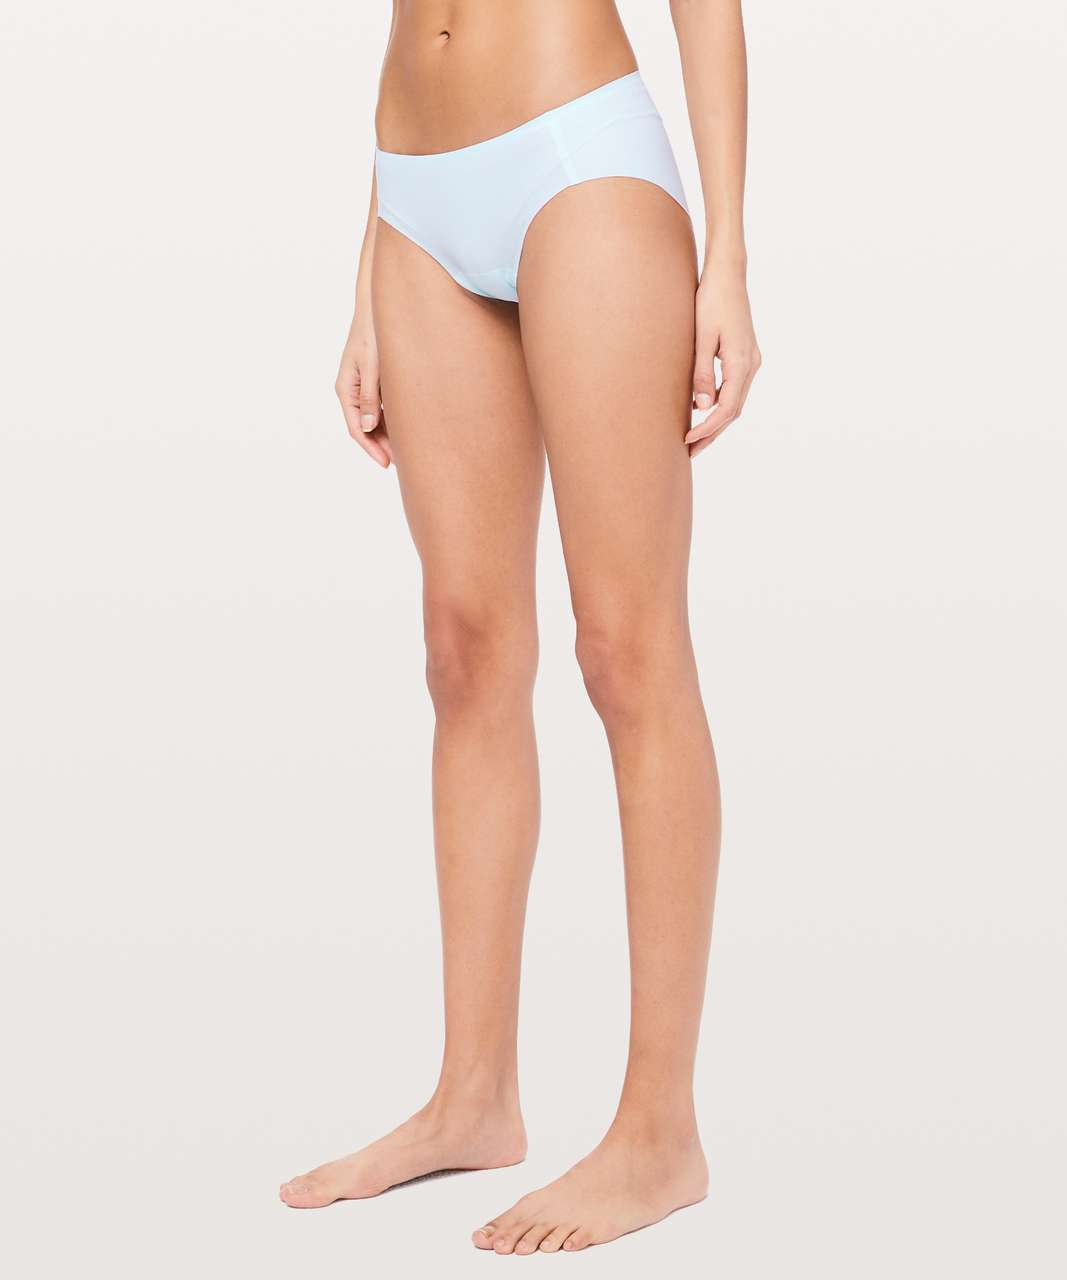 Lululemon Namastay Put Hipster - Sheer Blue